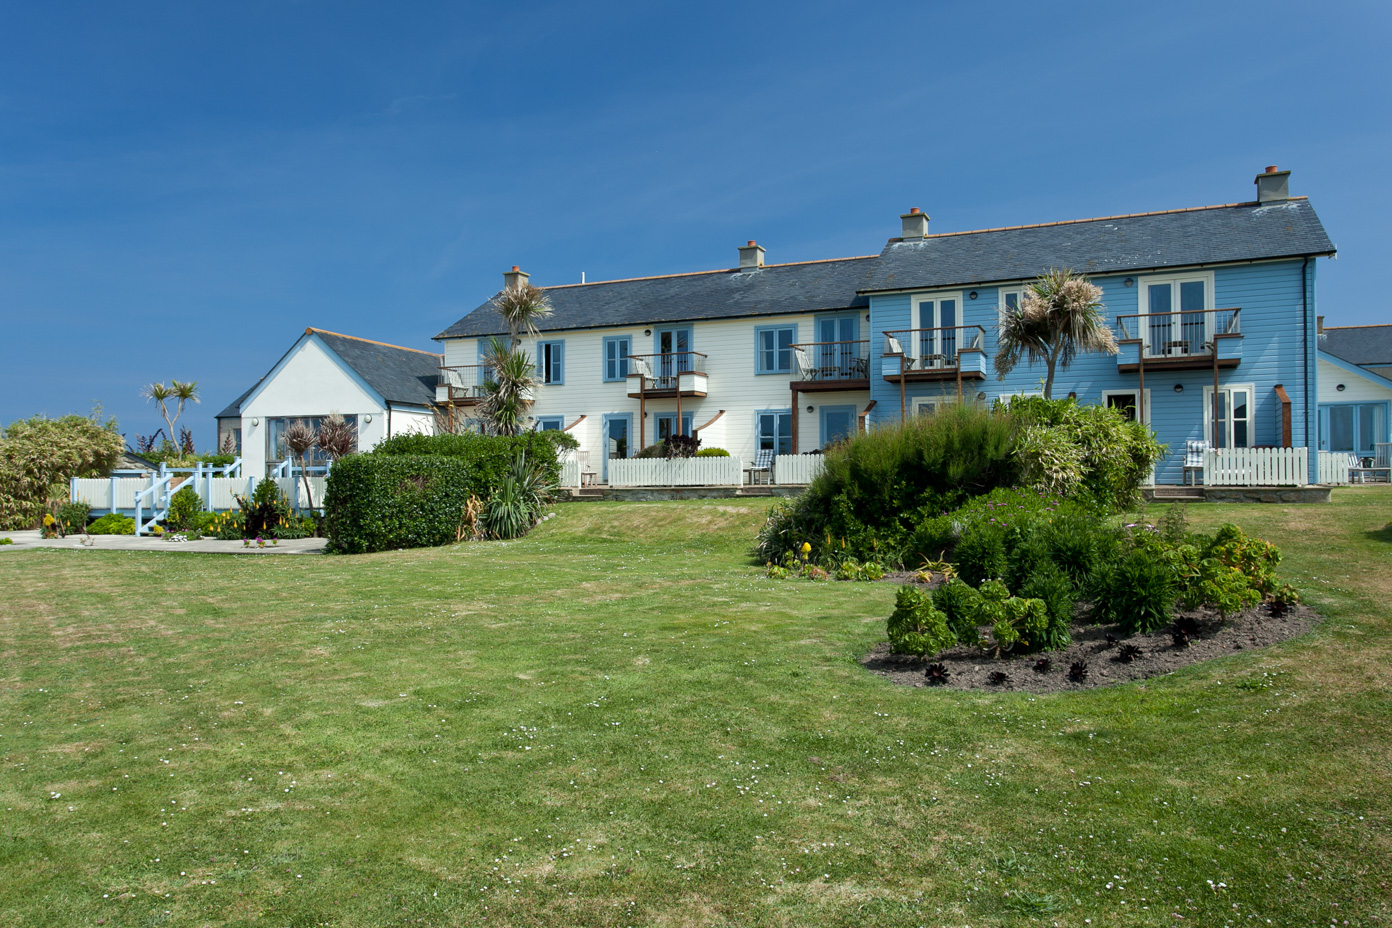 Hell Bay Hotel On Bryher was also shortlisted for Cornwall Tourism Award in the Small/Boutique Hotel of the Year category (for the fourth consecutive year) recently. Image courtesy of Tresco Island.